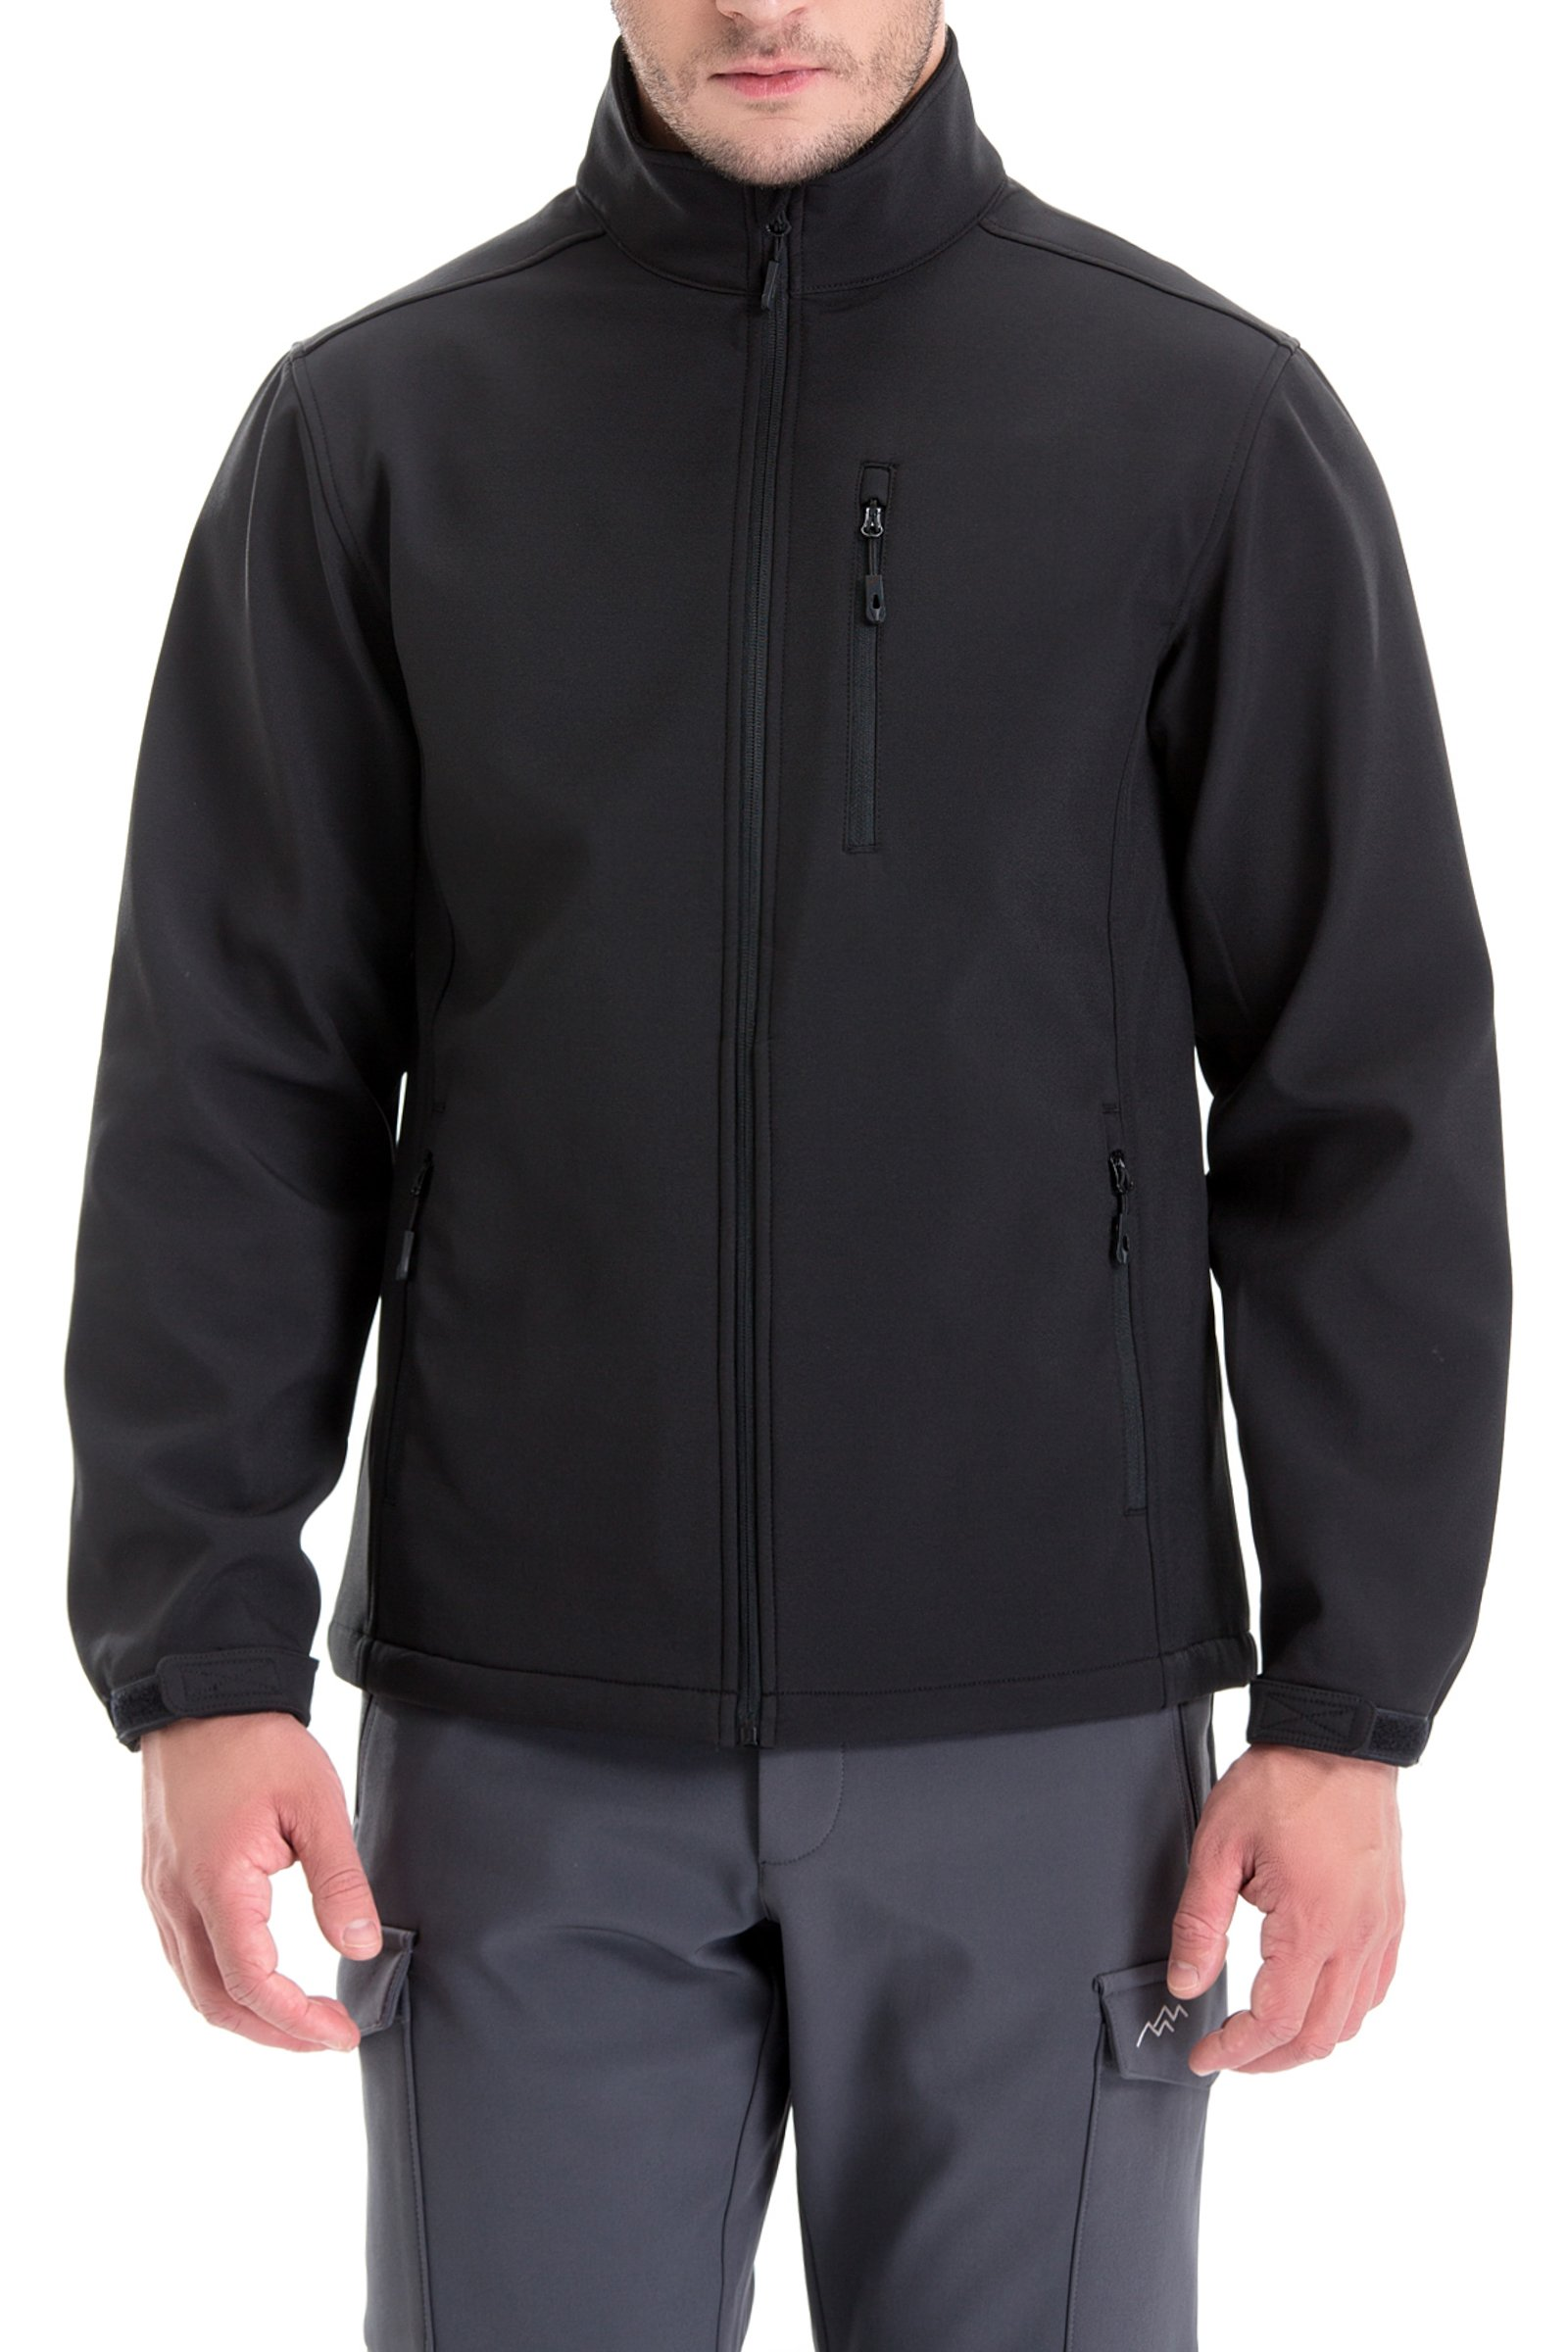 TRAILSIDE SUPPLY CO. Mens Lightweight Winter Softshell Fleece Jackets and Coats